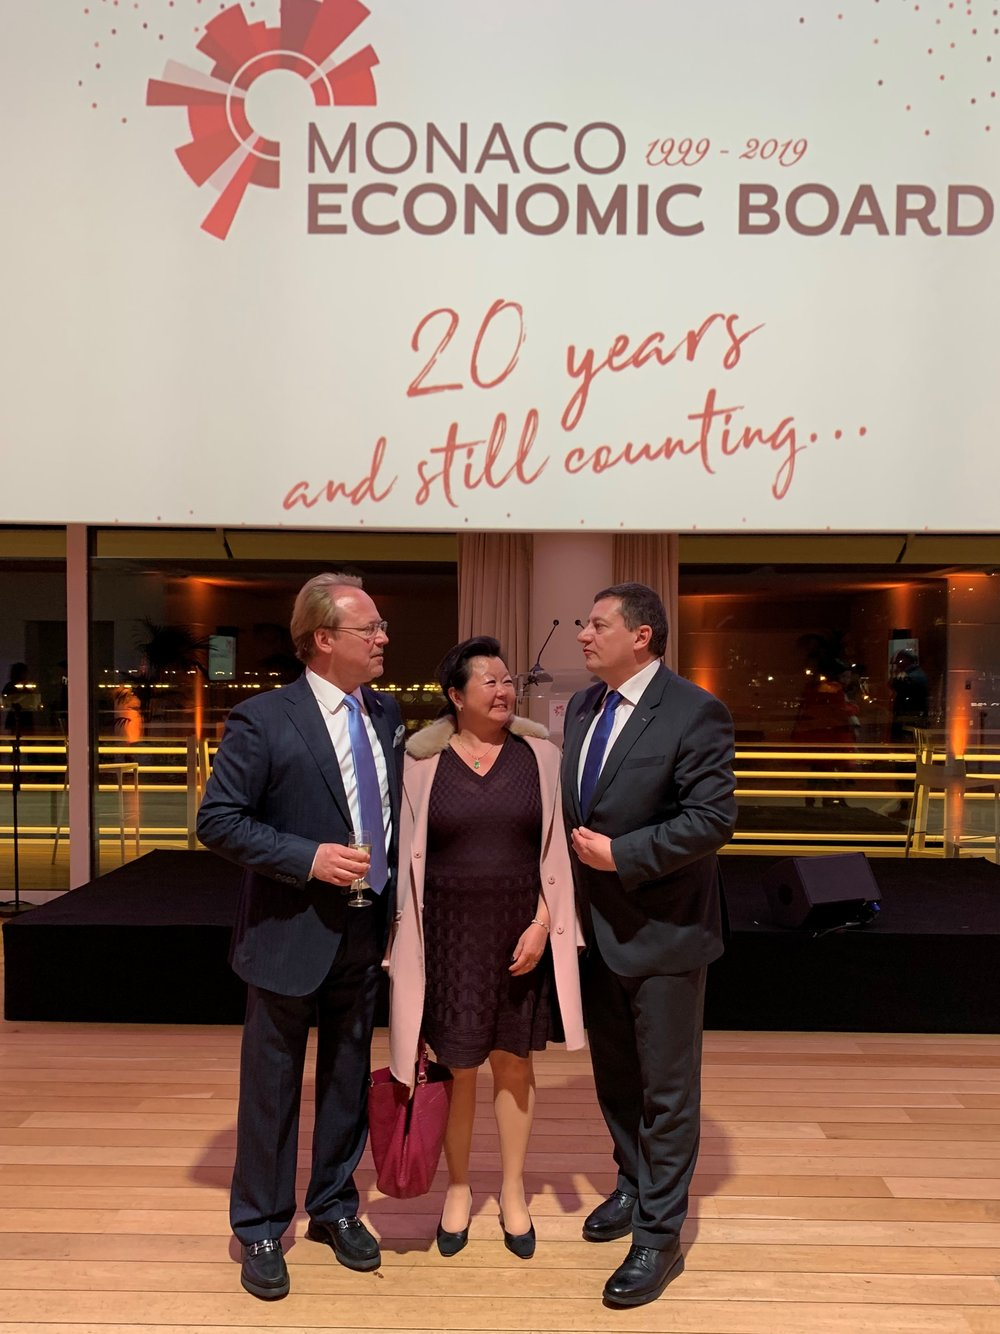 Monaco Economic Board 20th anniversary - new MEB CEO Guillaume Rose.JPG